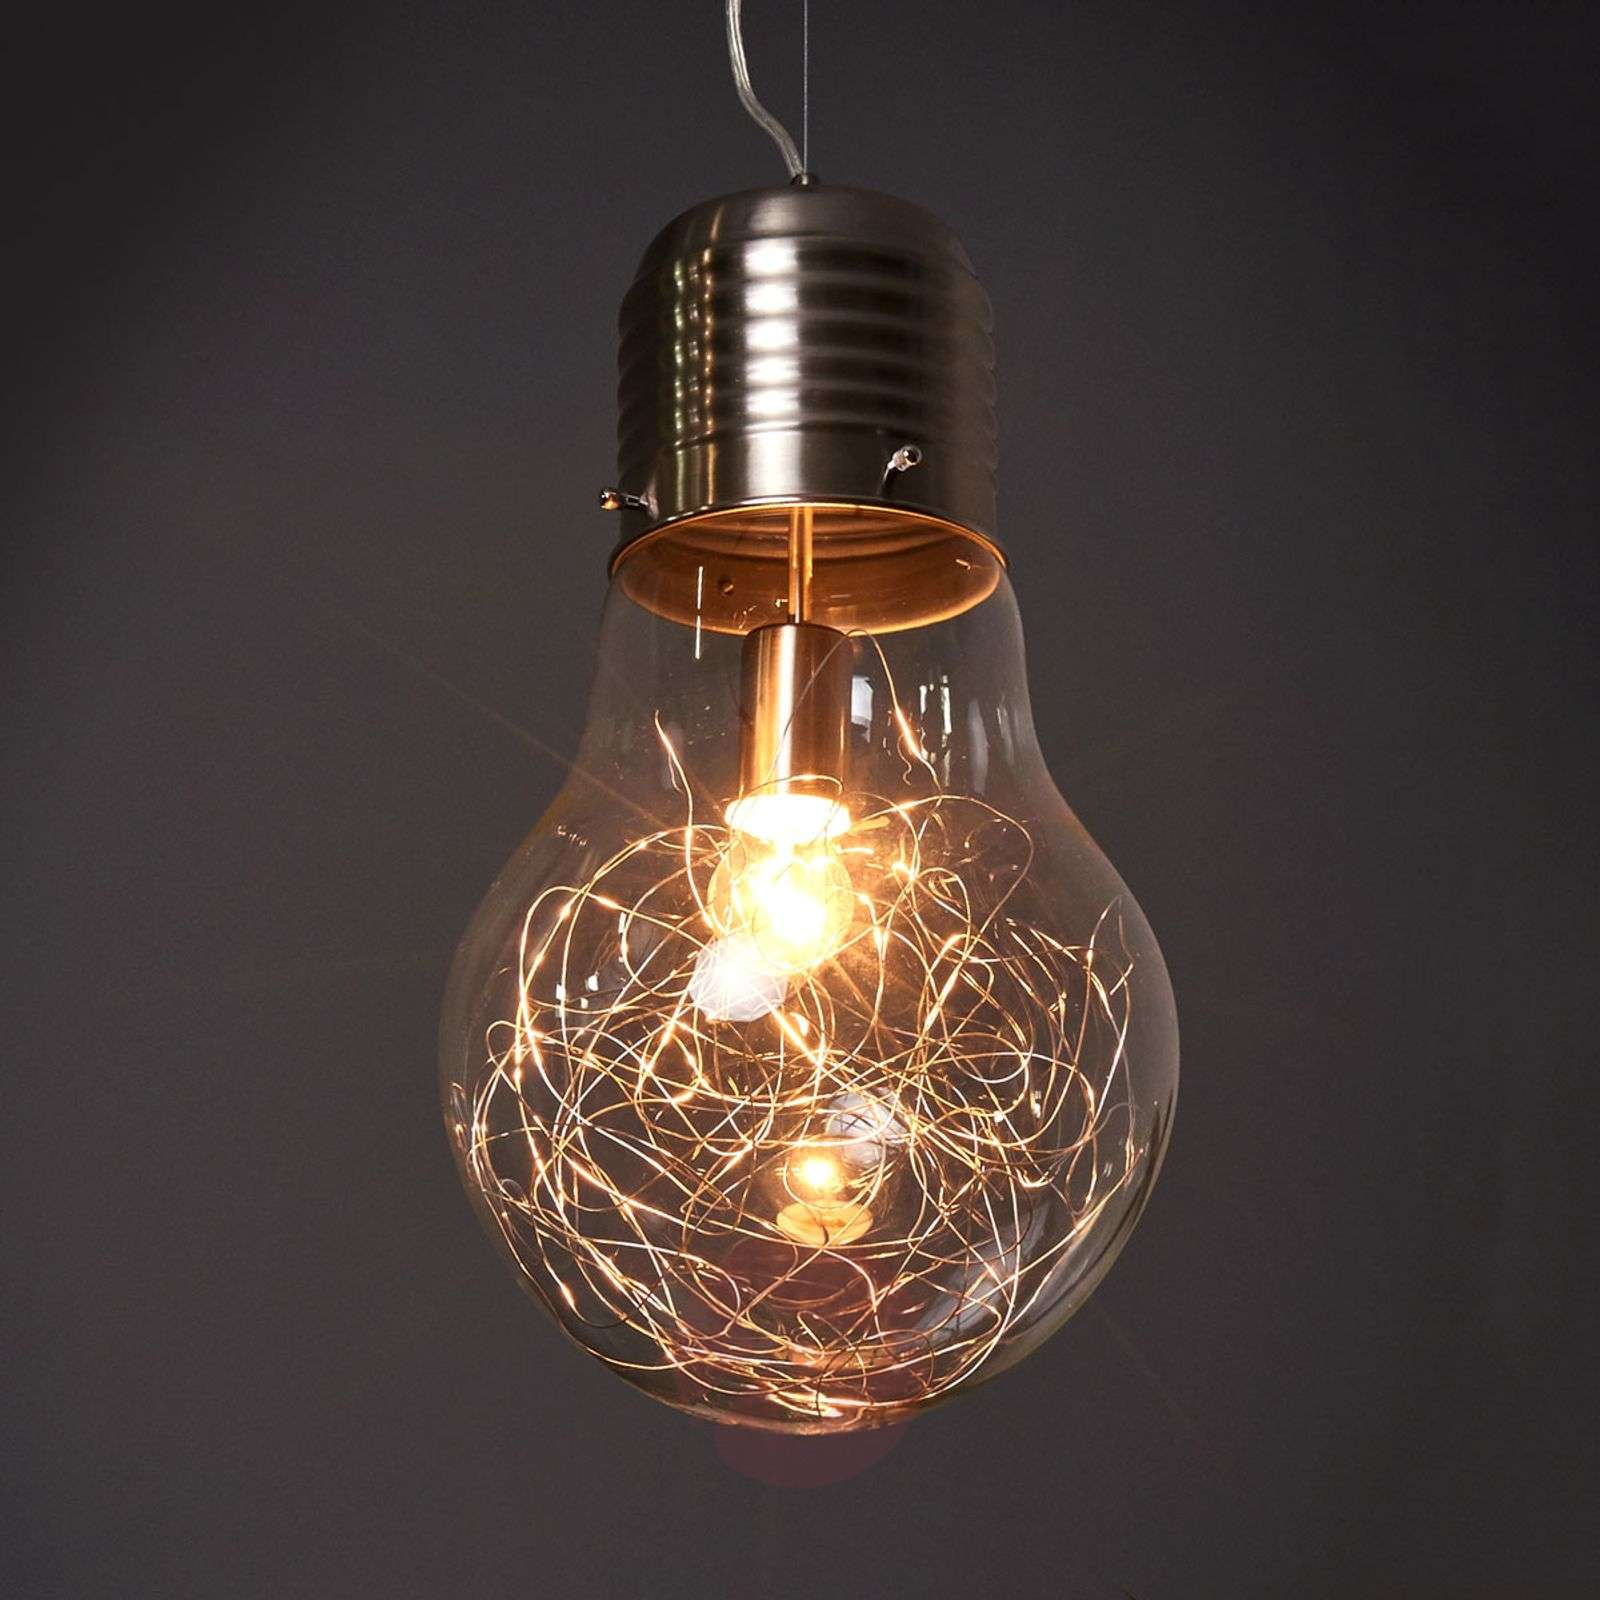 lighting led light products globe filament pendant trainspotters classic bulb